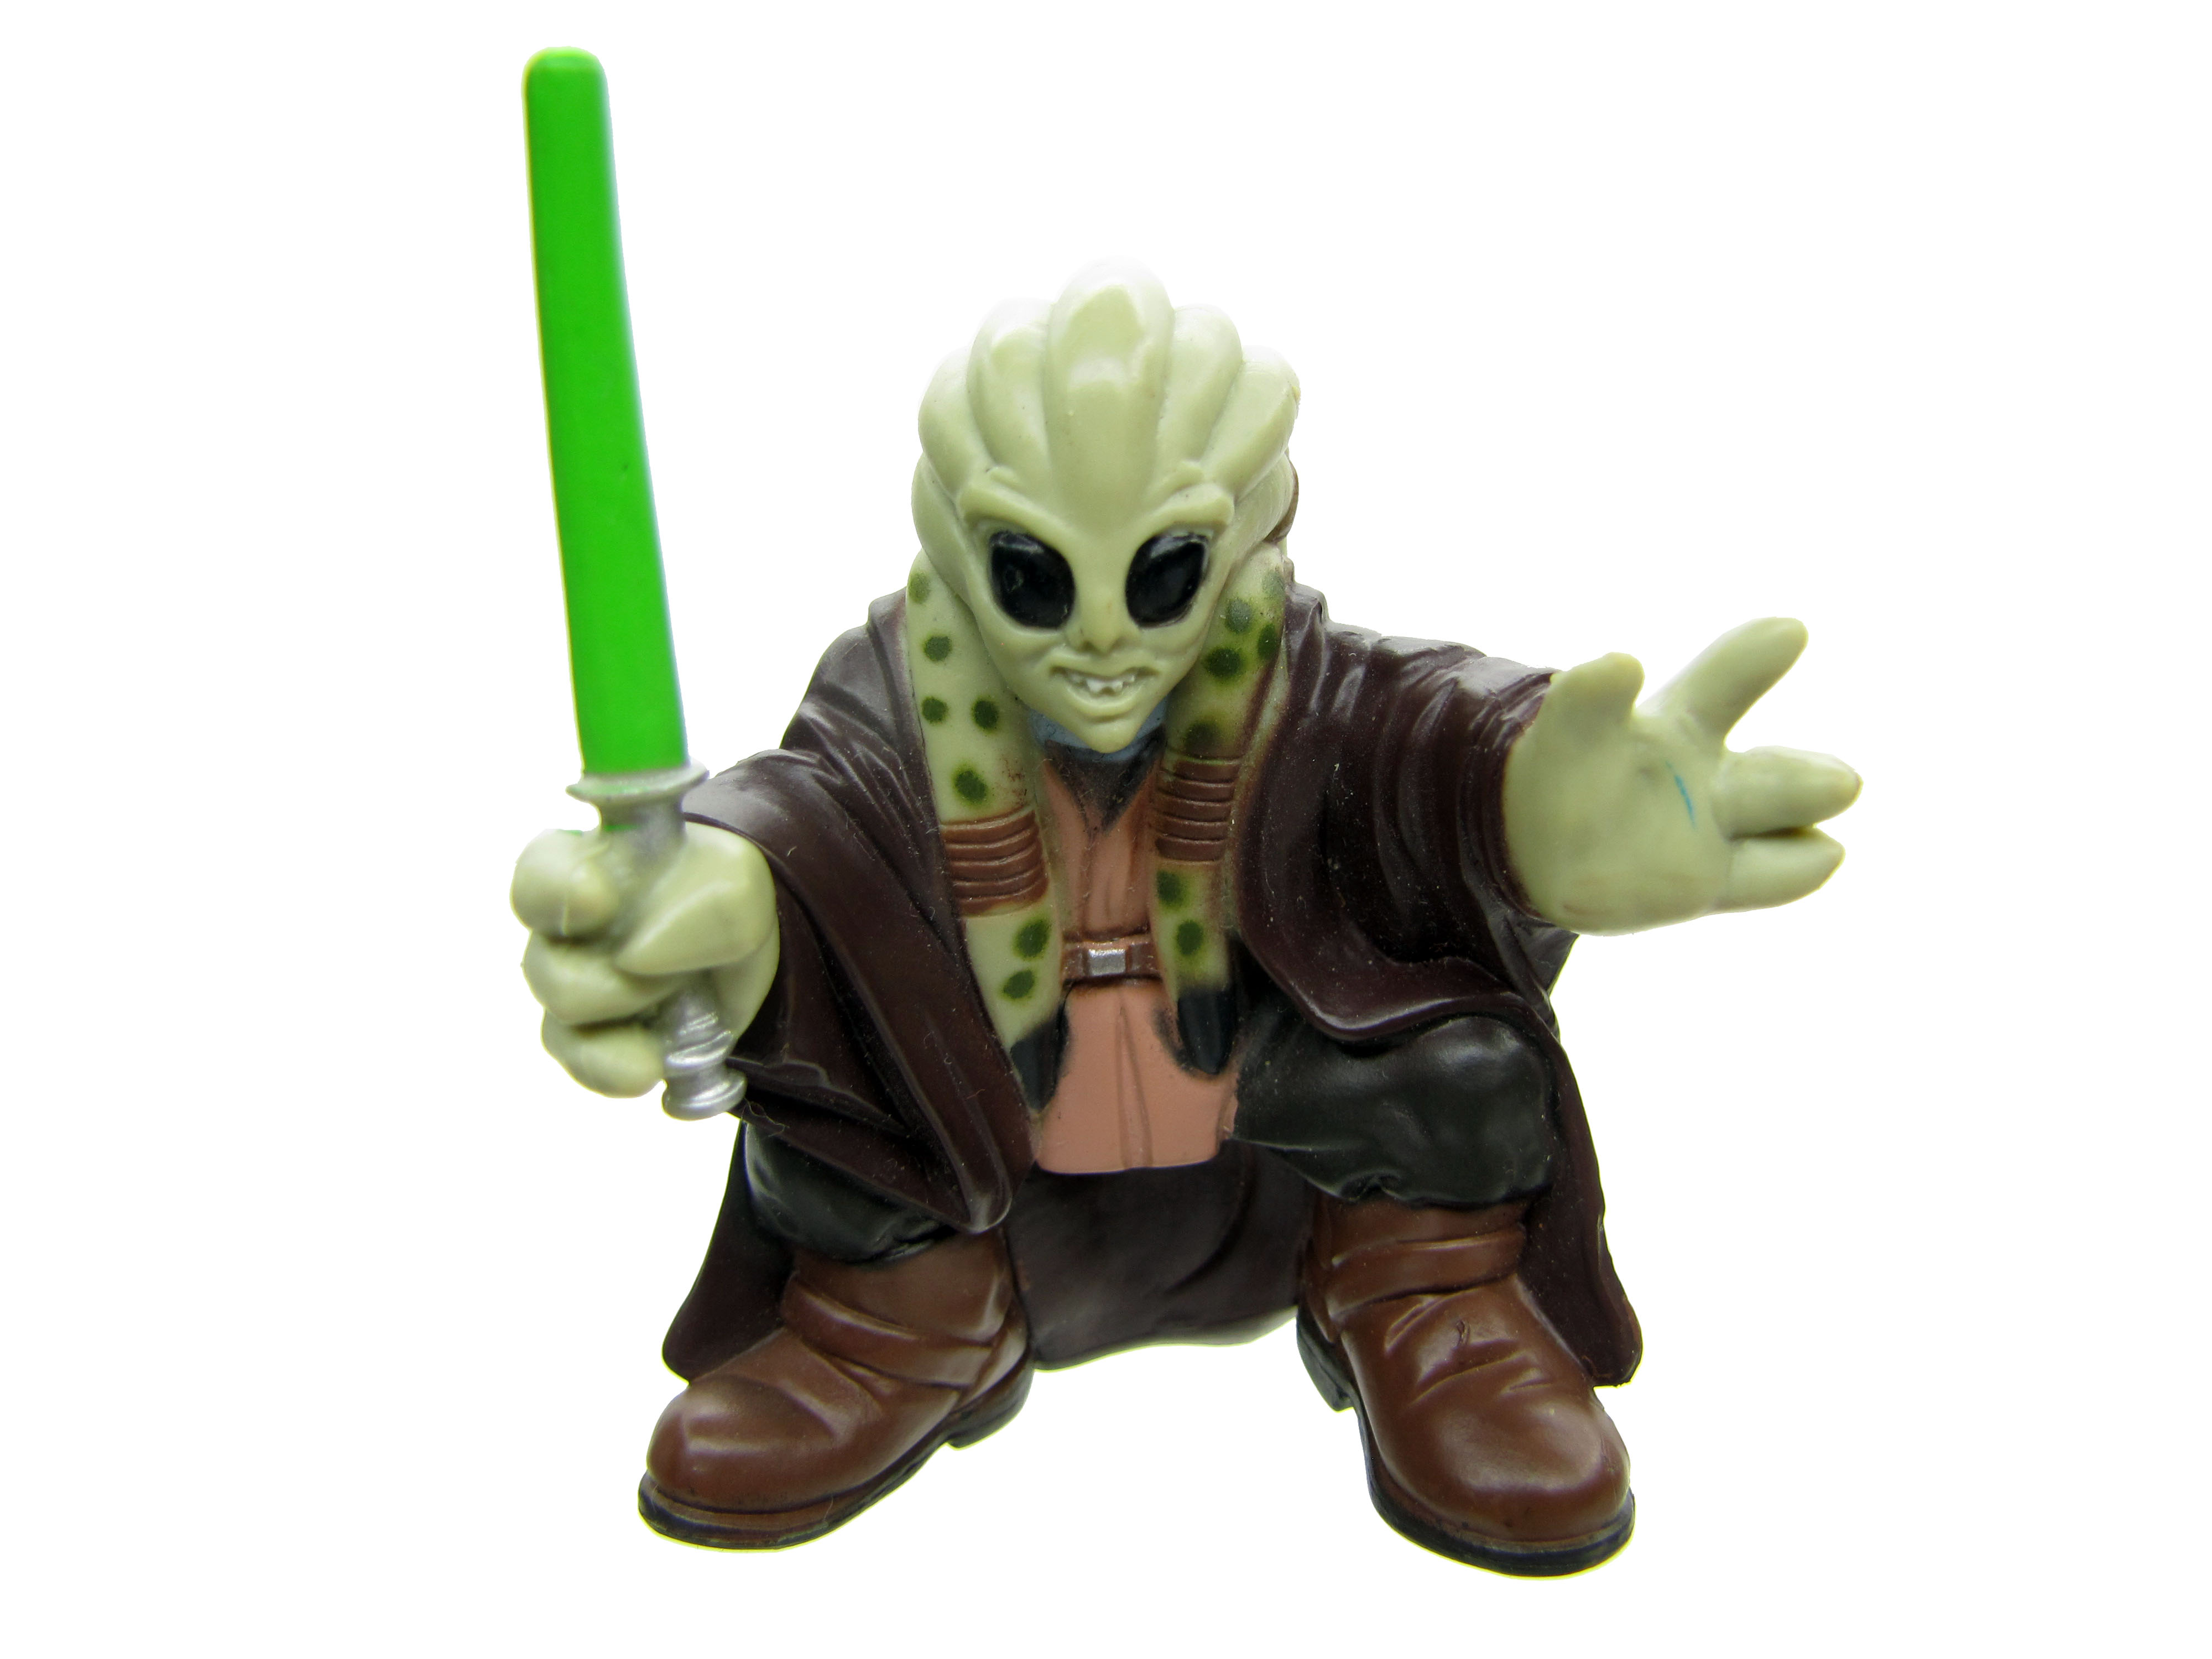 Star Wars Galactic Heroes Kit Fisto Attack of the Clones